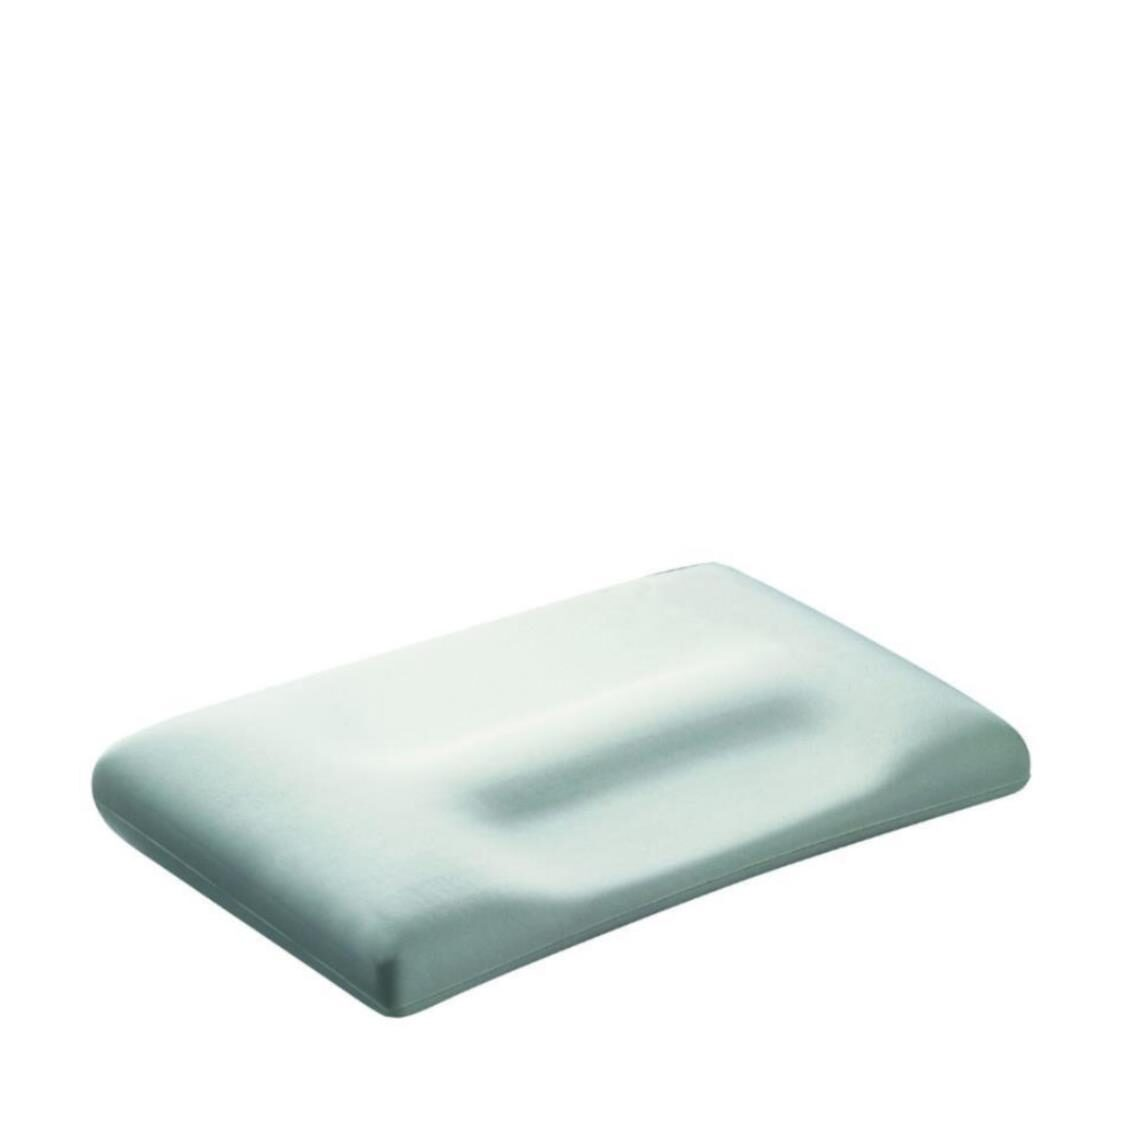 Therapeutic Pillow AntiSnore